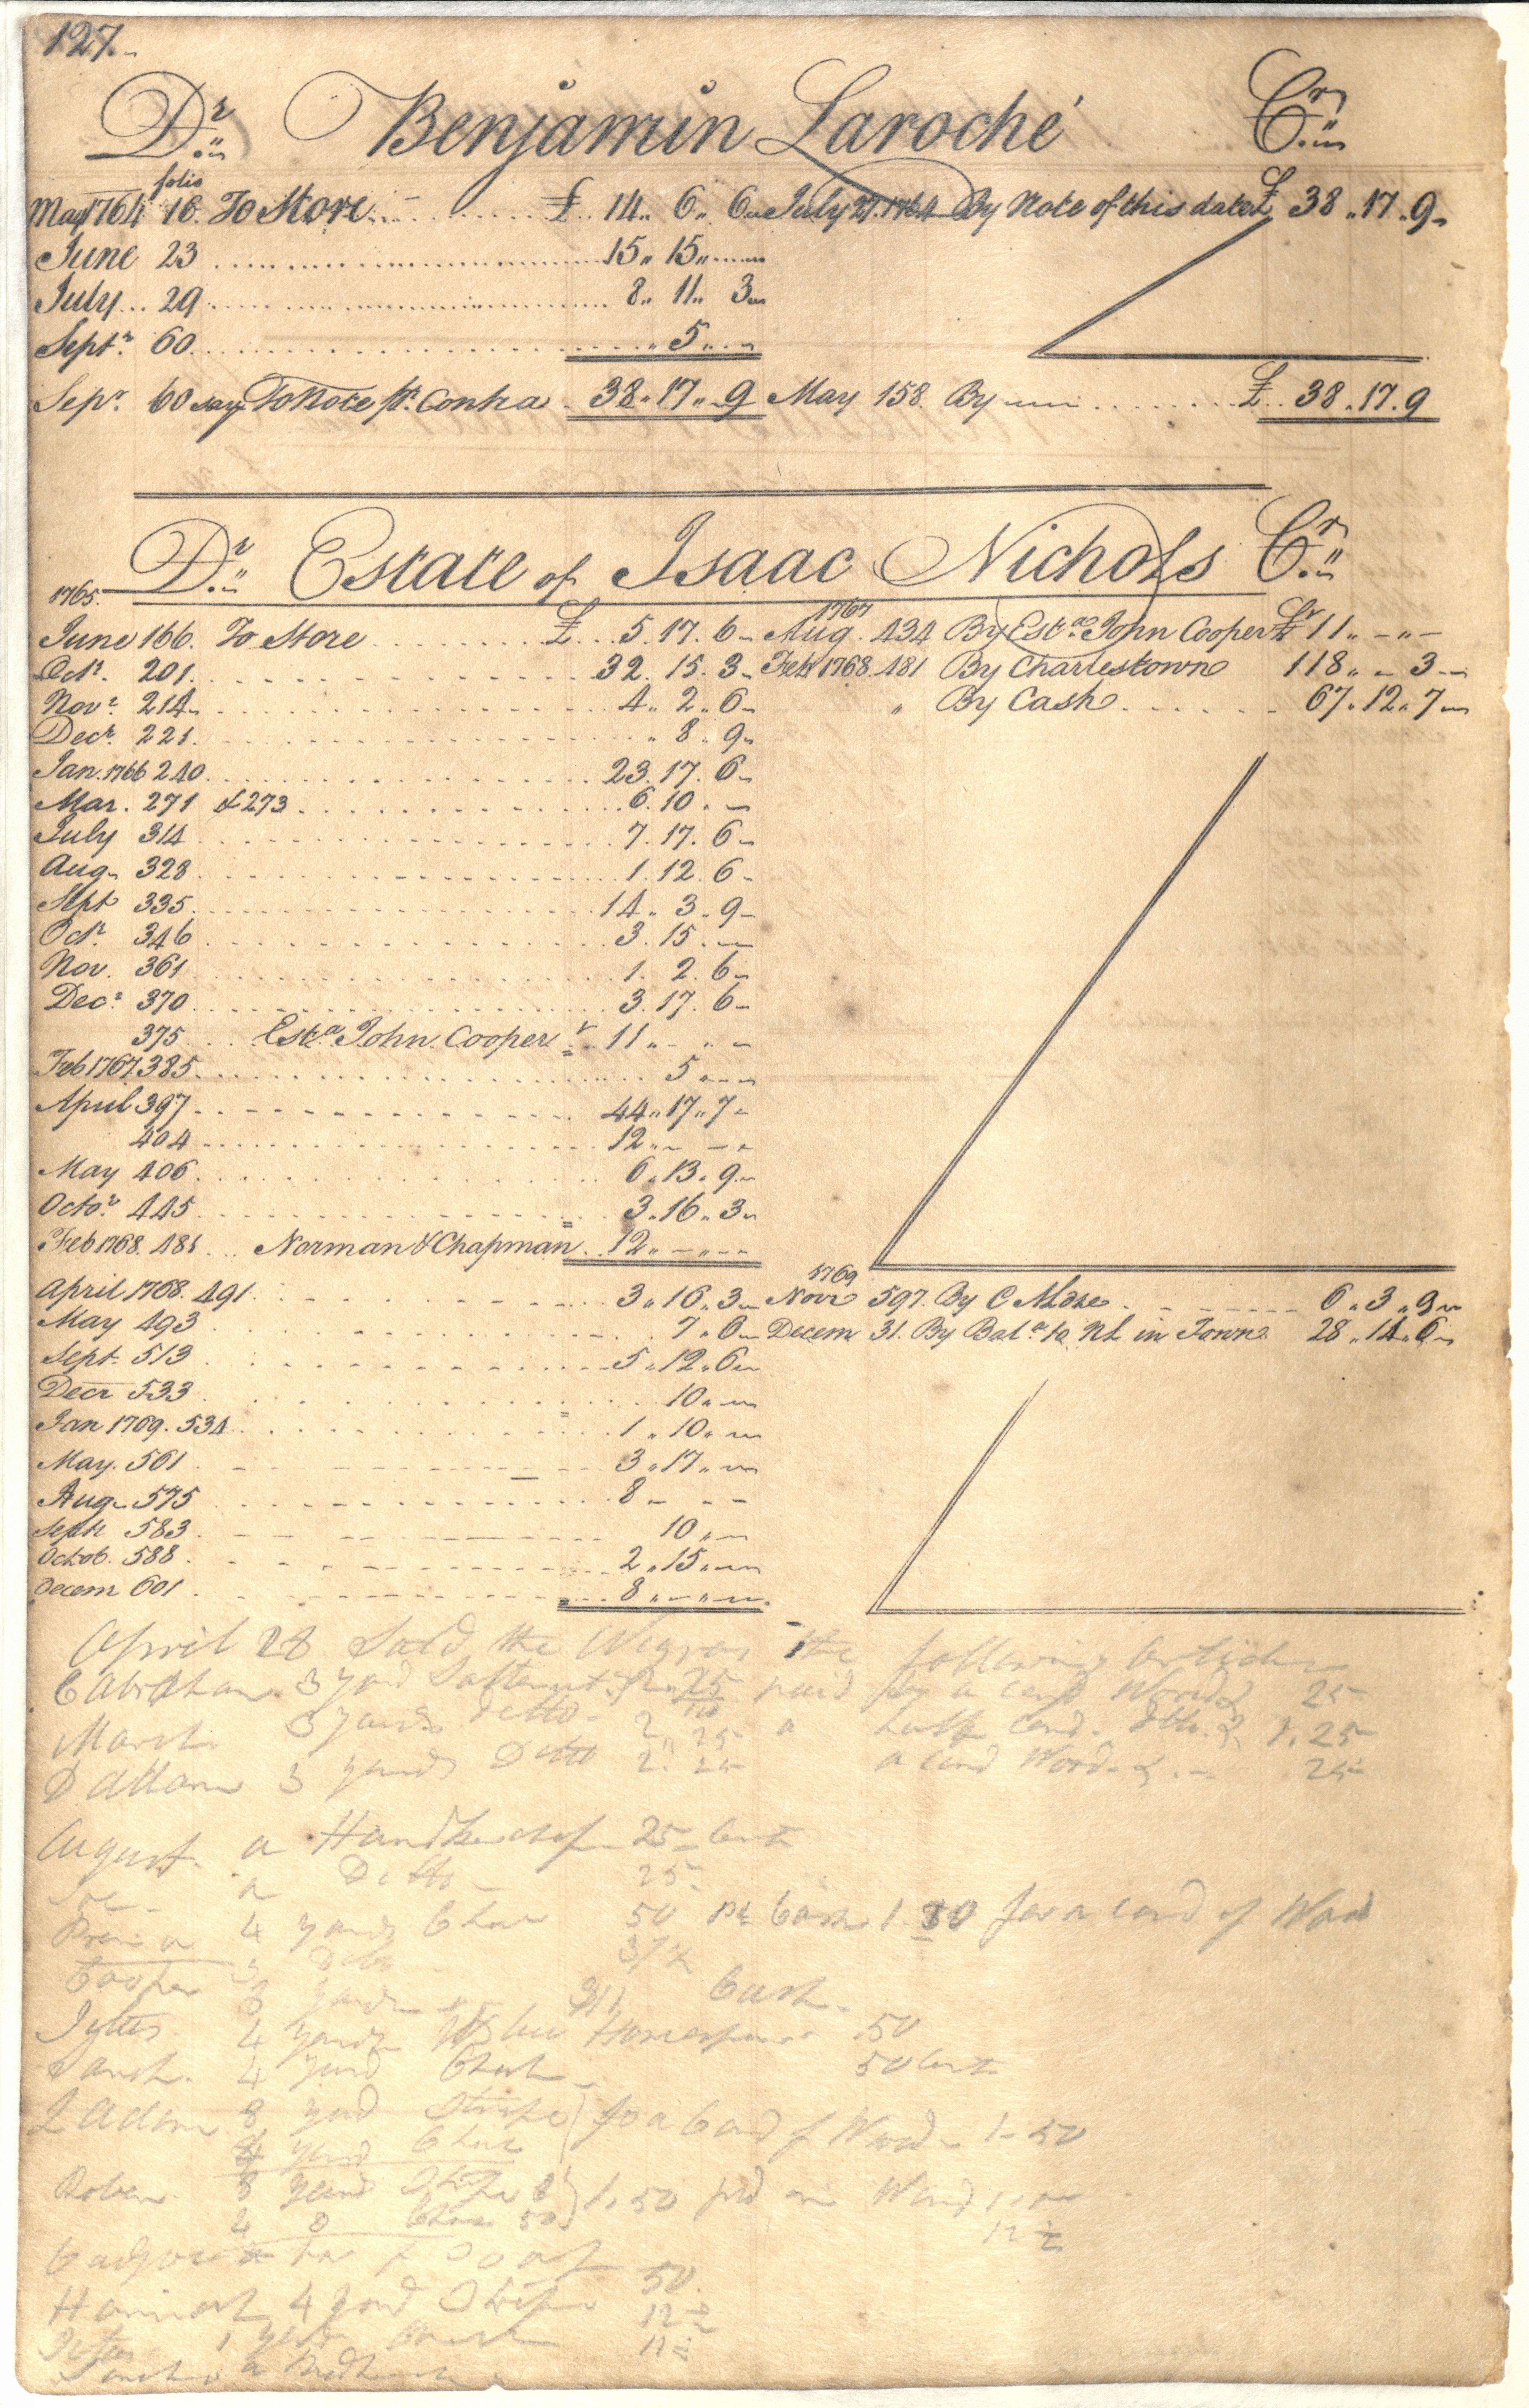 Plowden Weston's Business Ledger, page 127